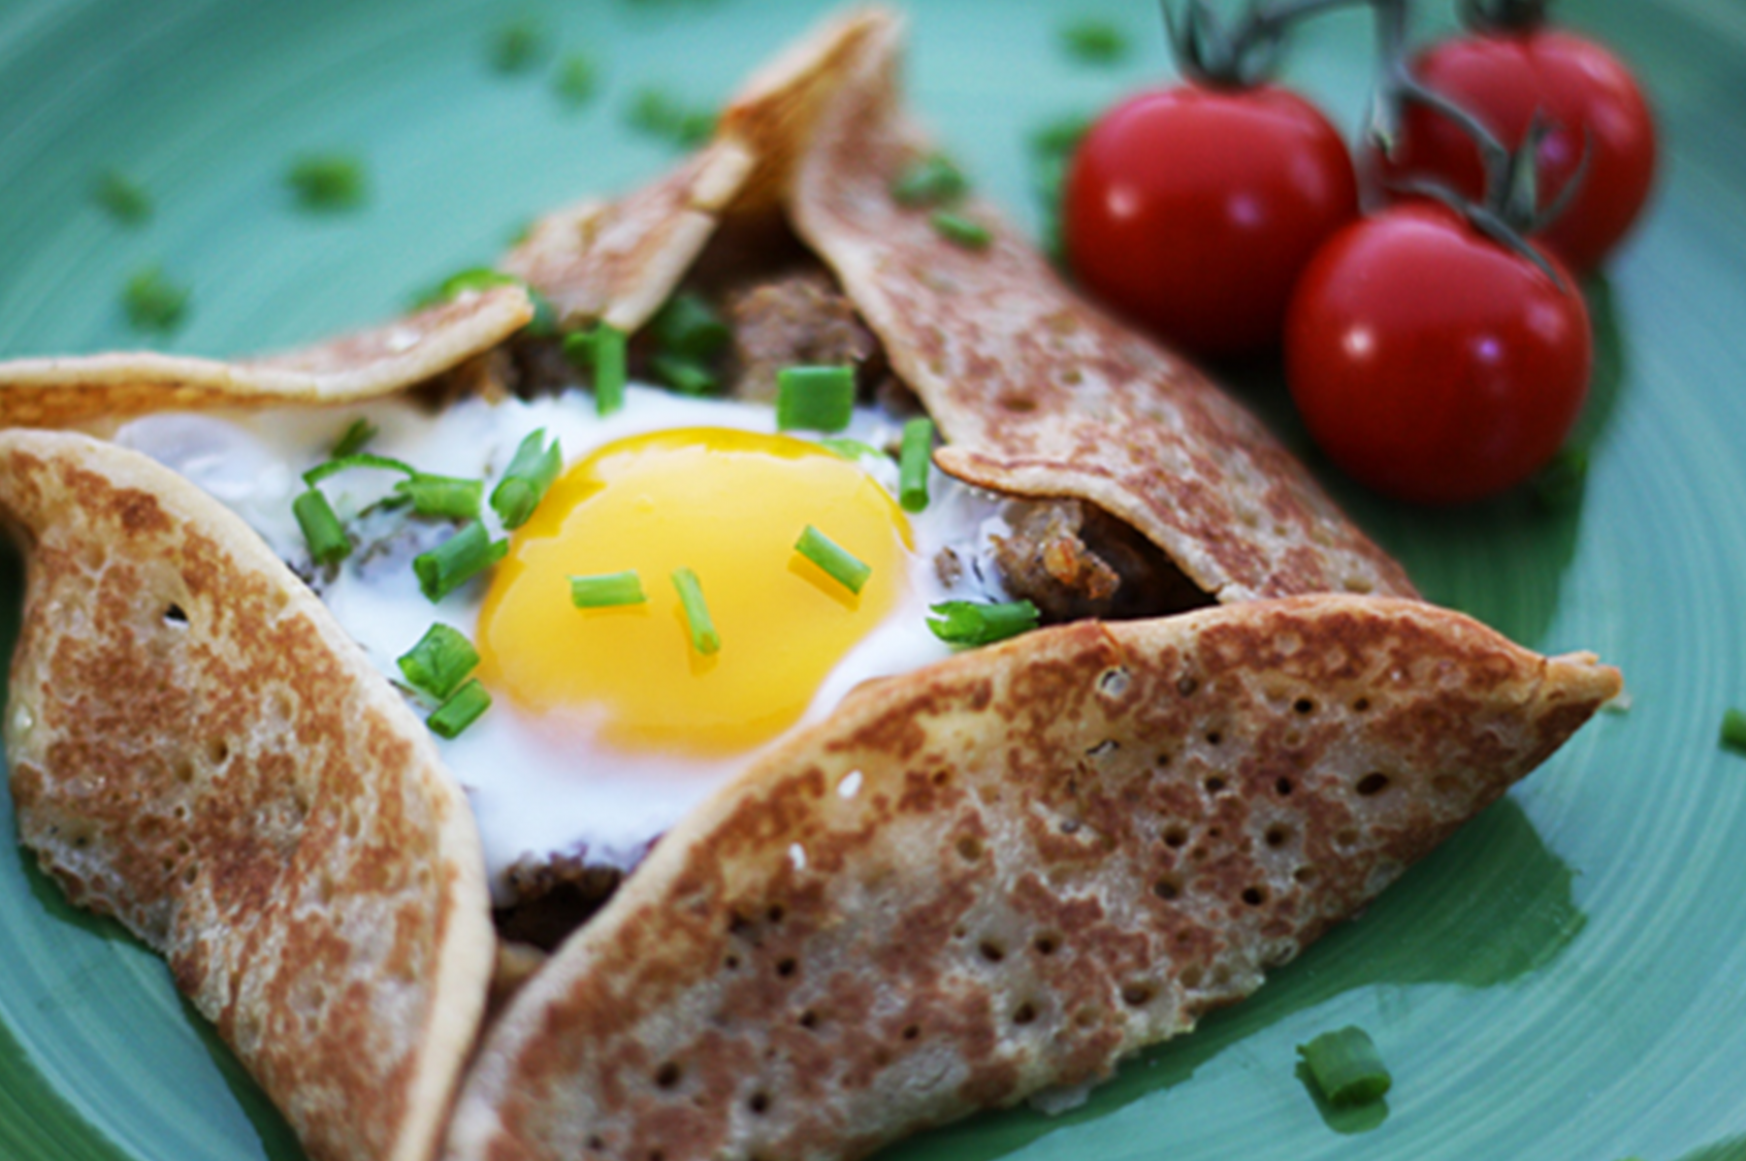 10 Things You Should Put an Egg On (or Inside) - healthy egg yolk recipes